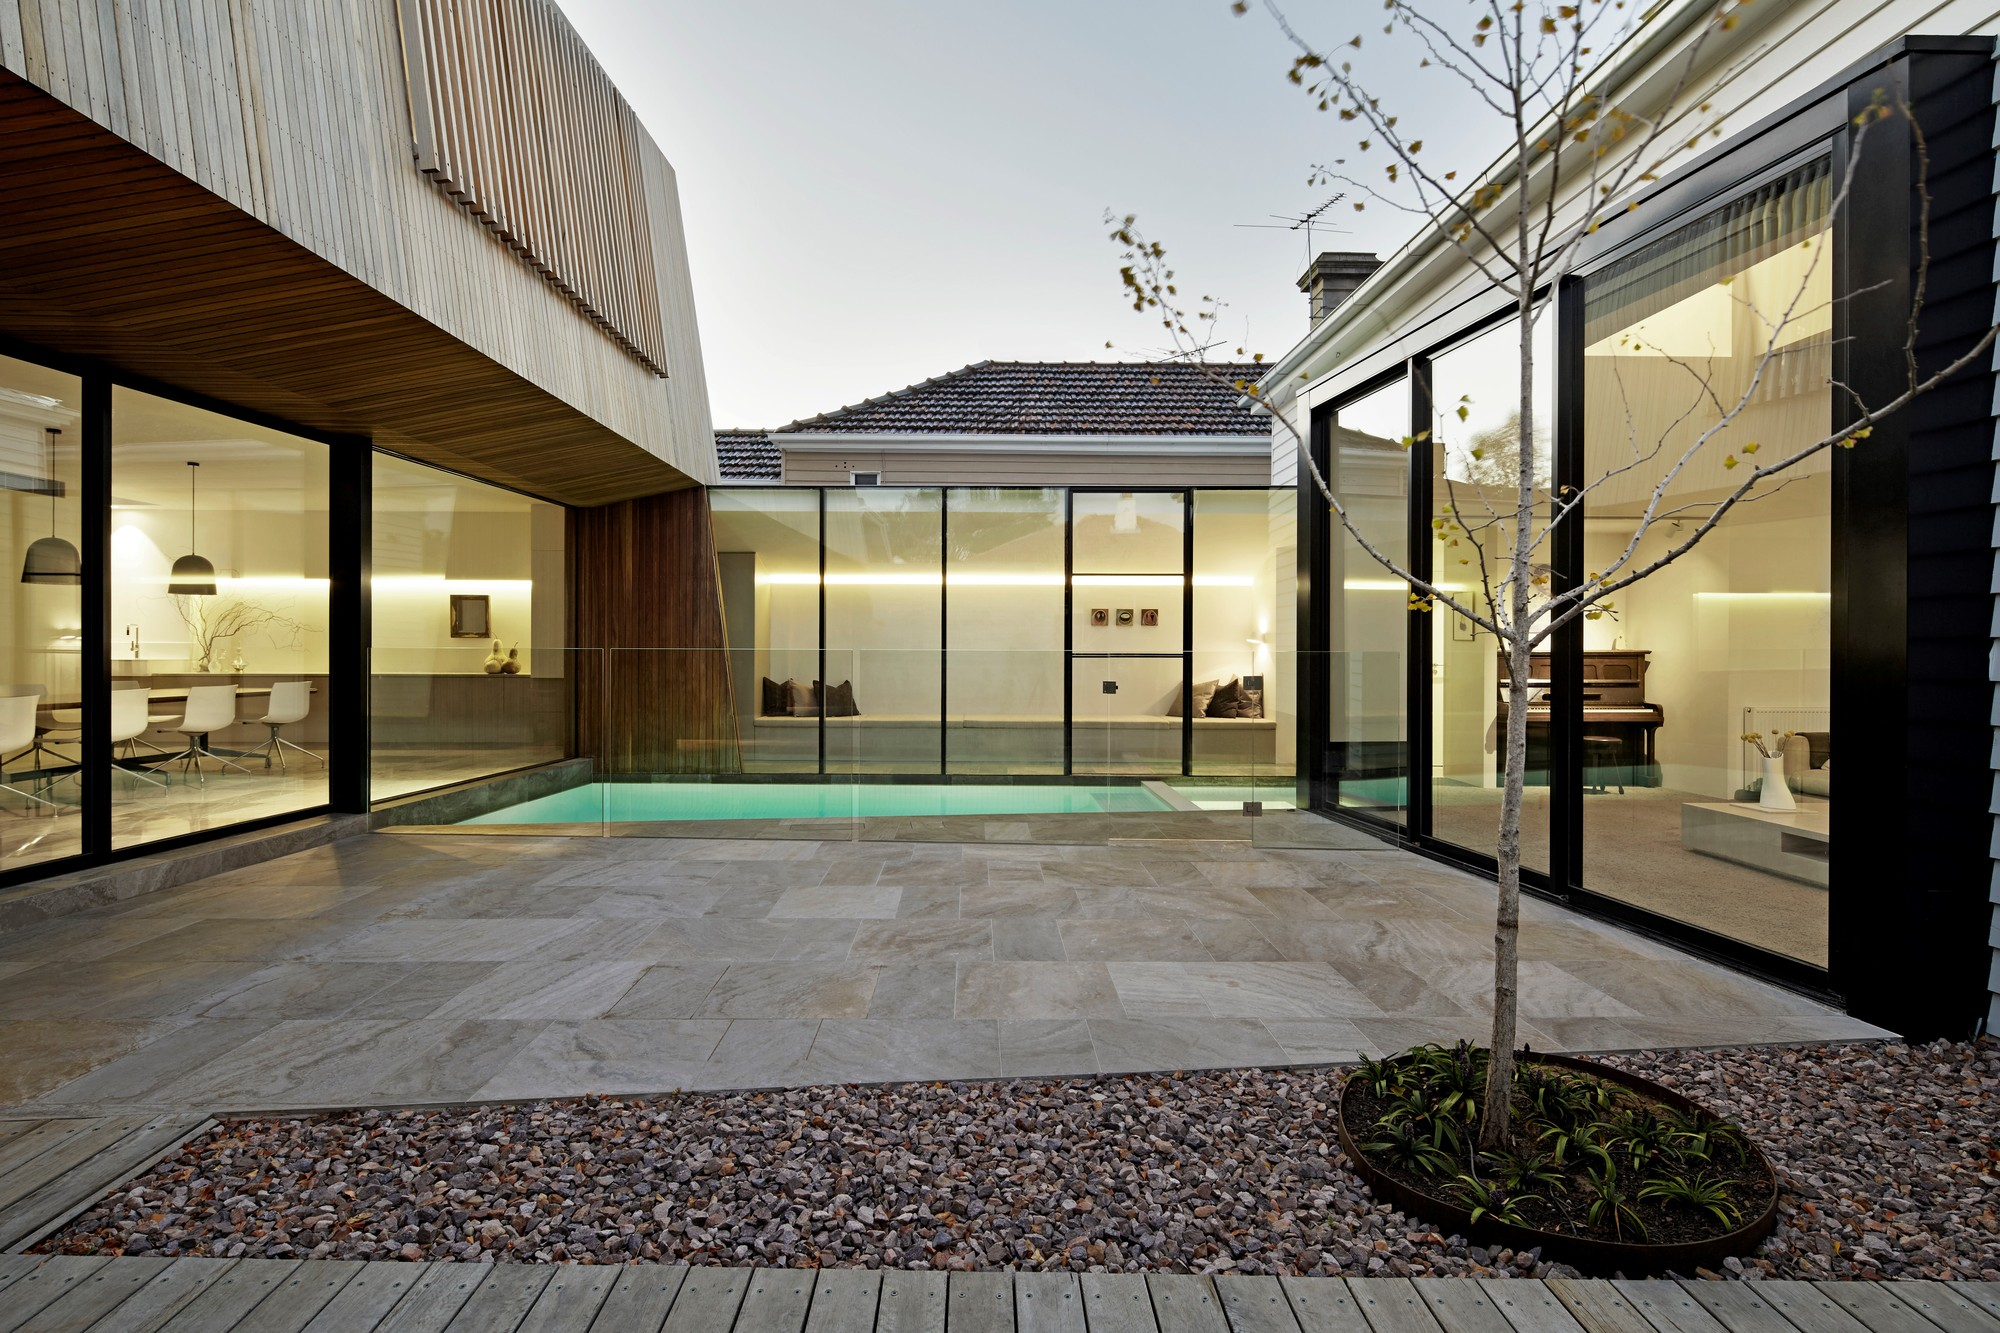 House 3 / Coy Yiontis Architects (4)